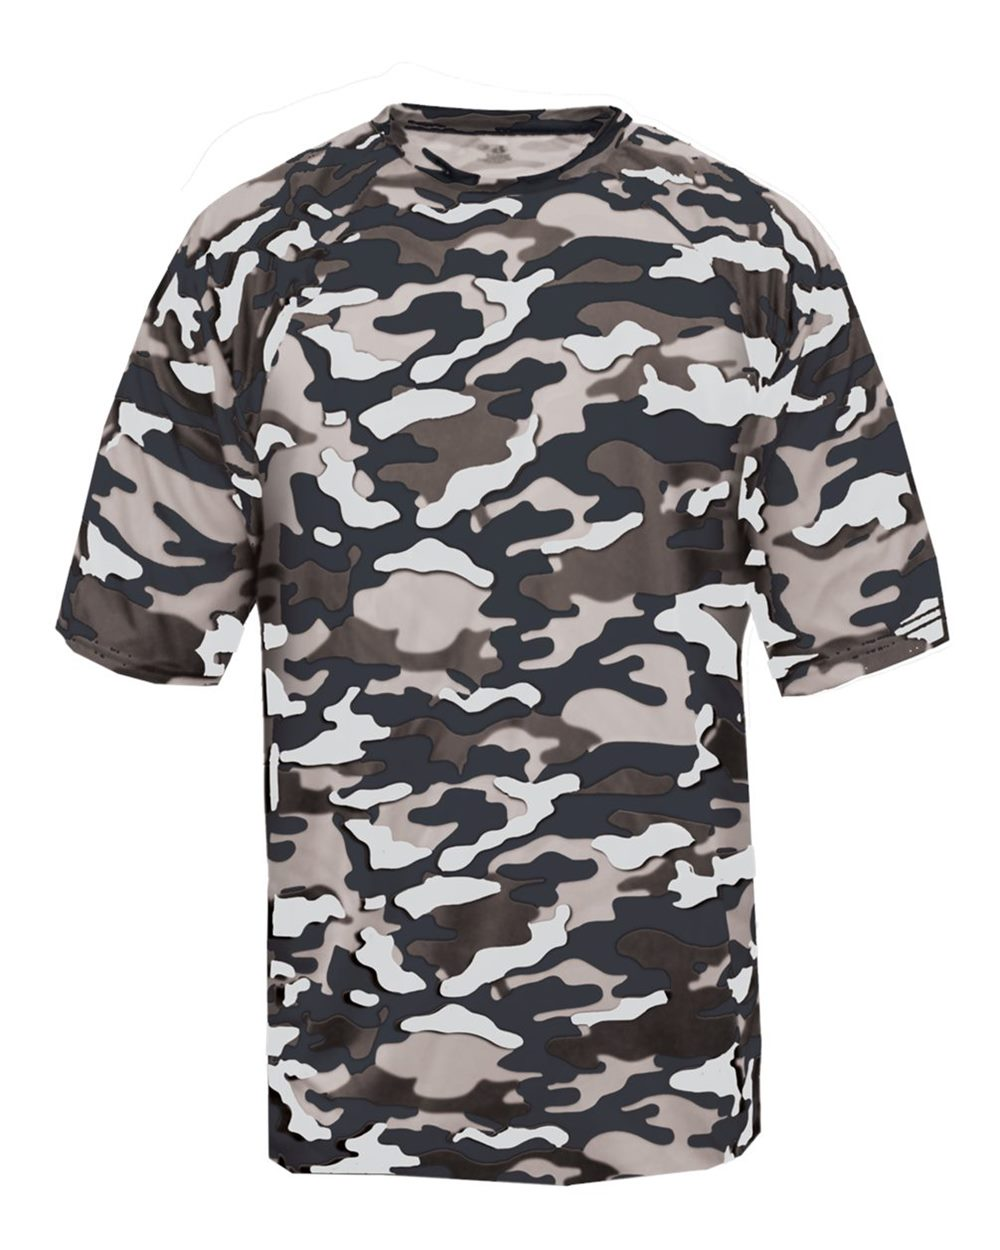 7423b5eb202 Customize youth toddler camo tshirts